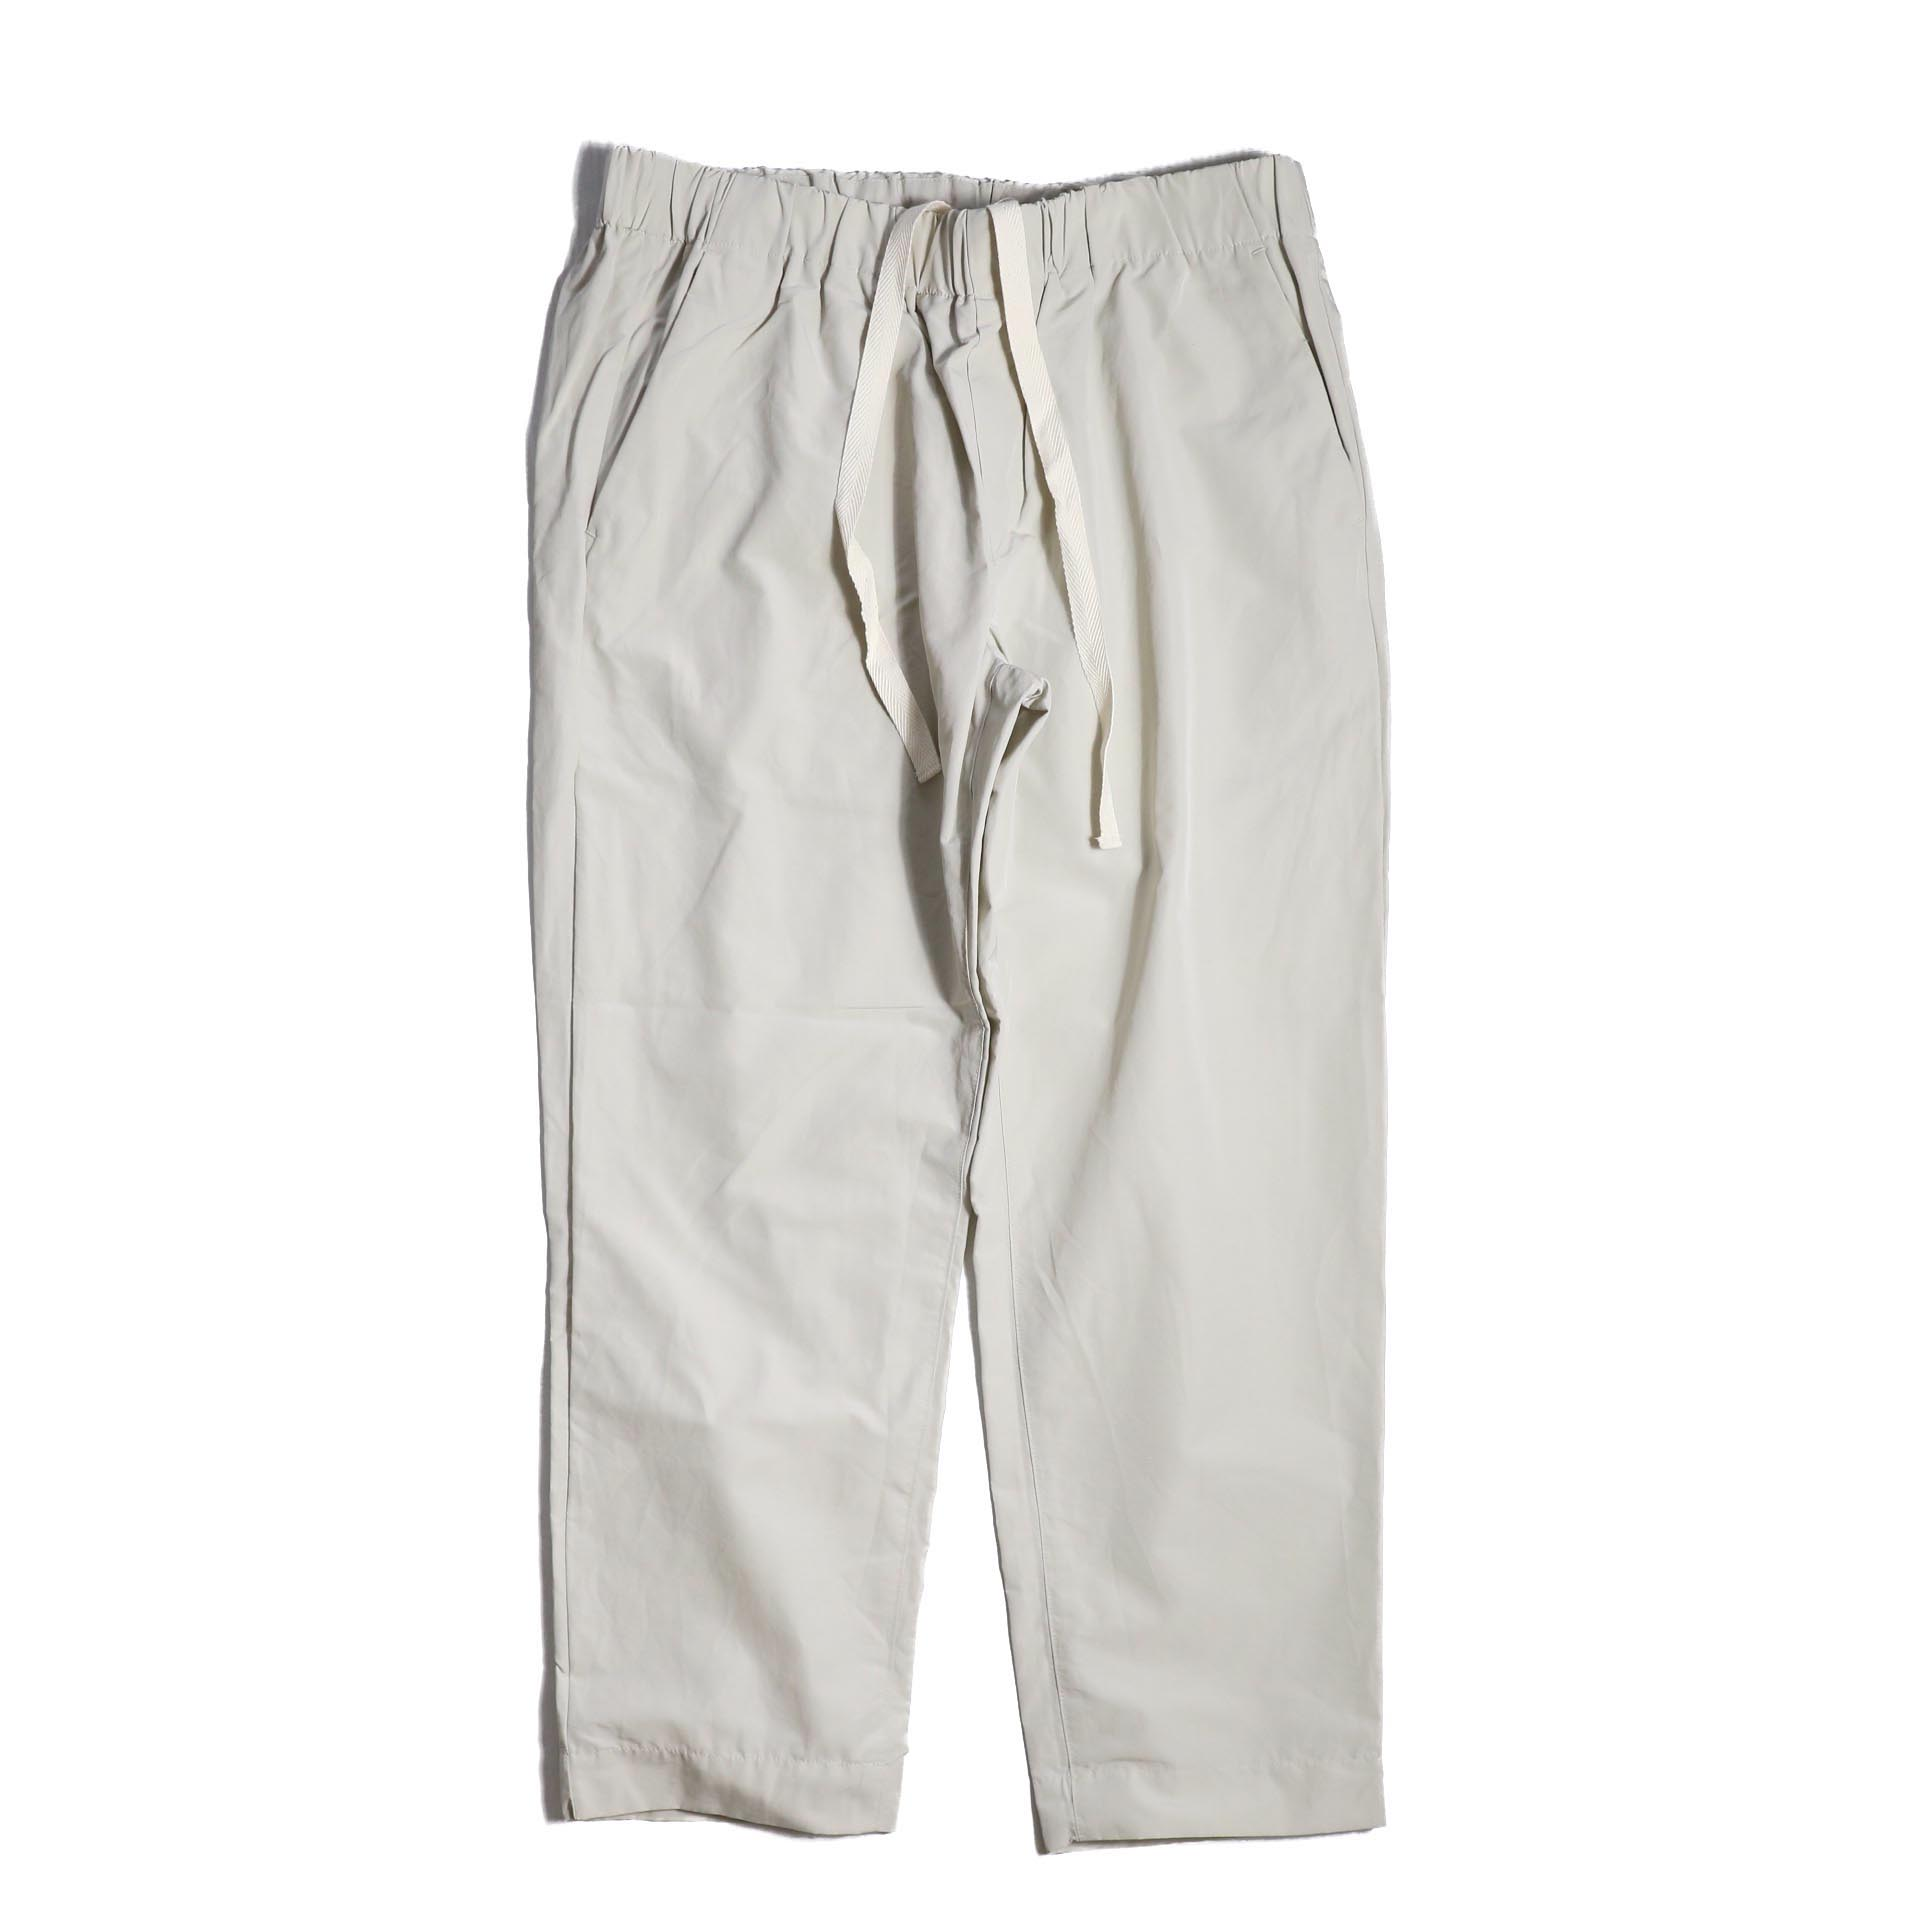 "FUTURE PRIMITIVE / FP EASY PANTS ""SHINY"" -LT.BEIGE"